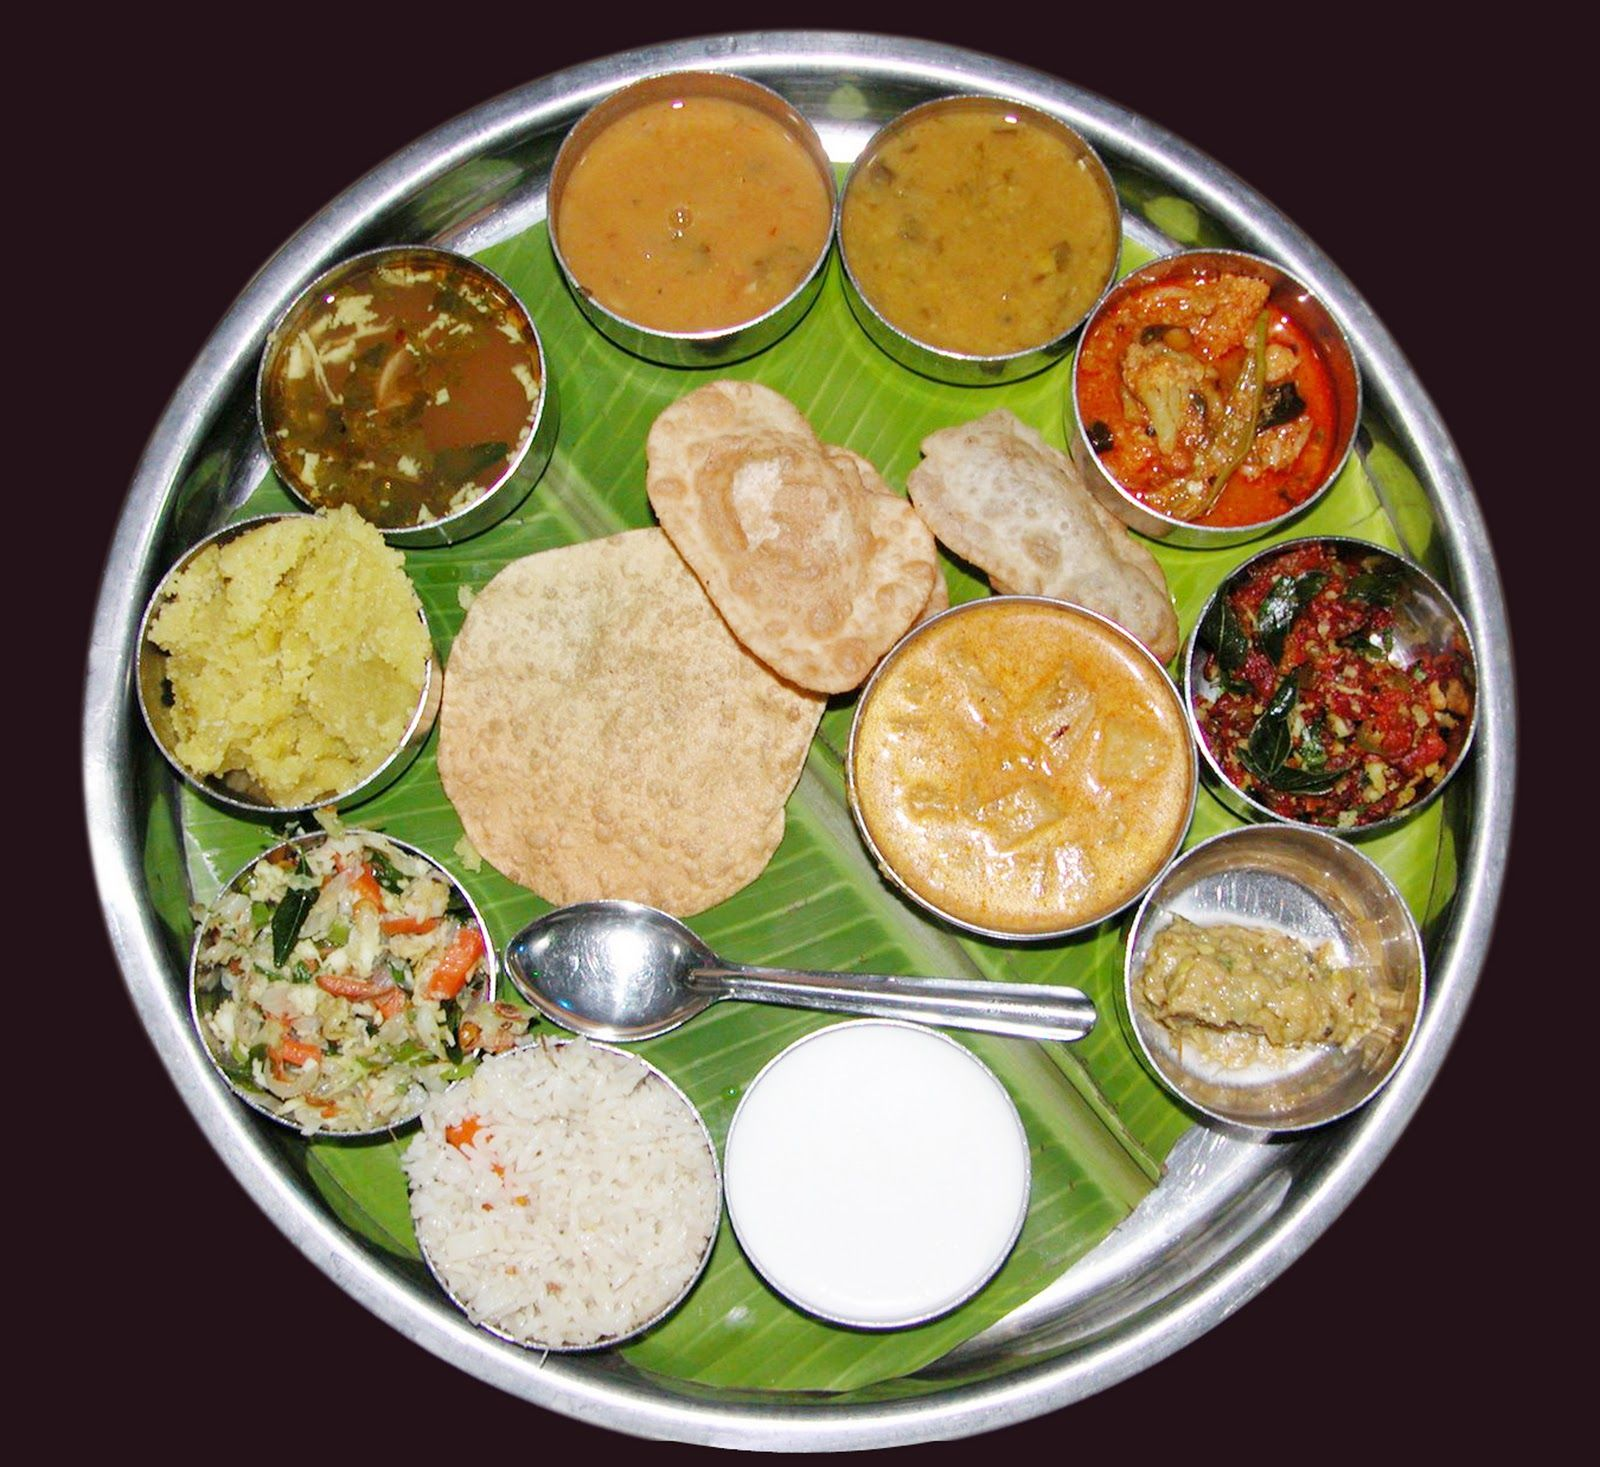 South indian food google search feast for the eyes south indian food google search forumfinder Image collections